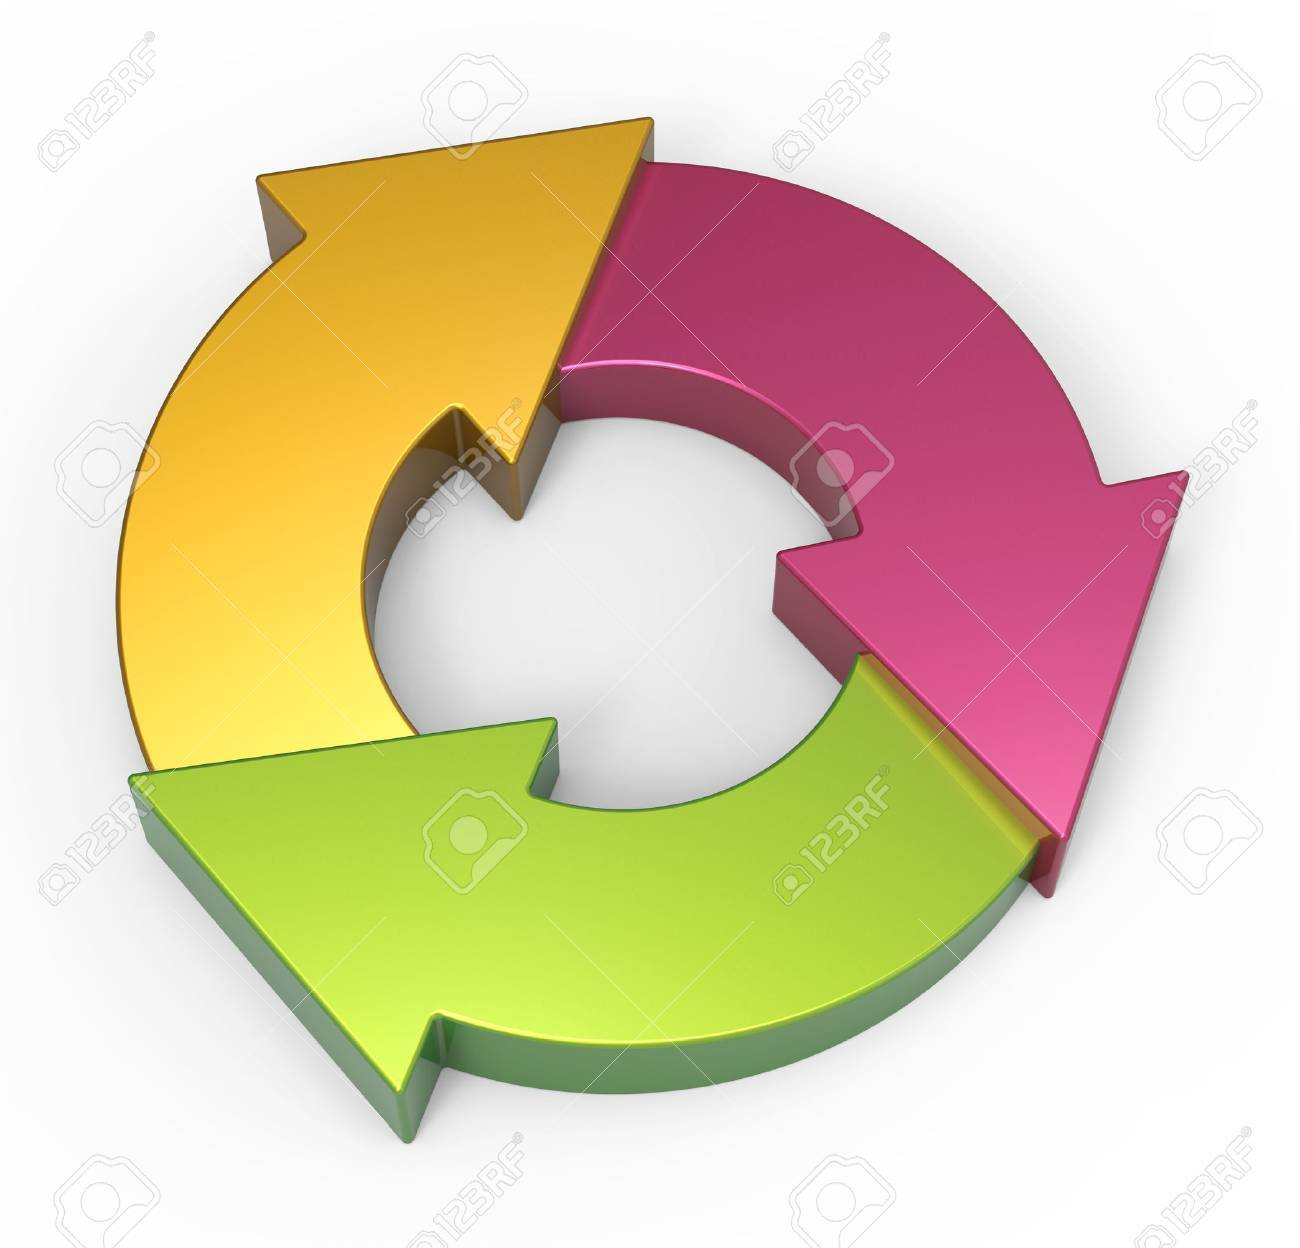 Process cycling arrow by arrow royalty free stock images image - Business Process Diagram As A Concept Stock Photo 21151584